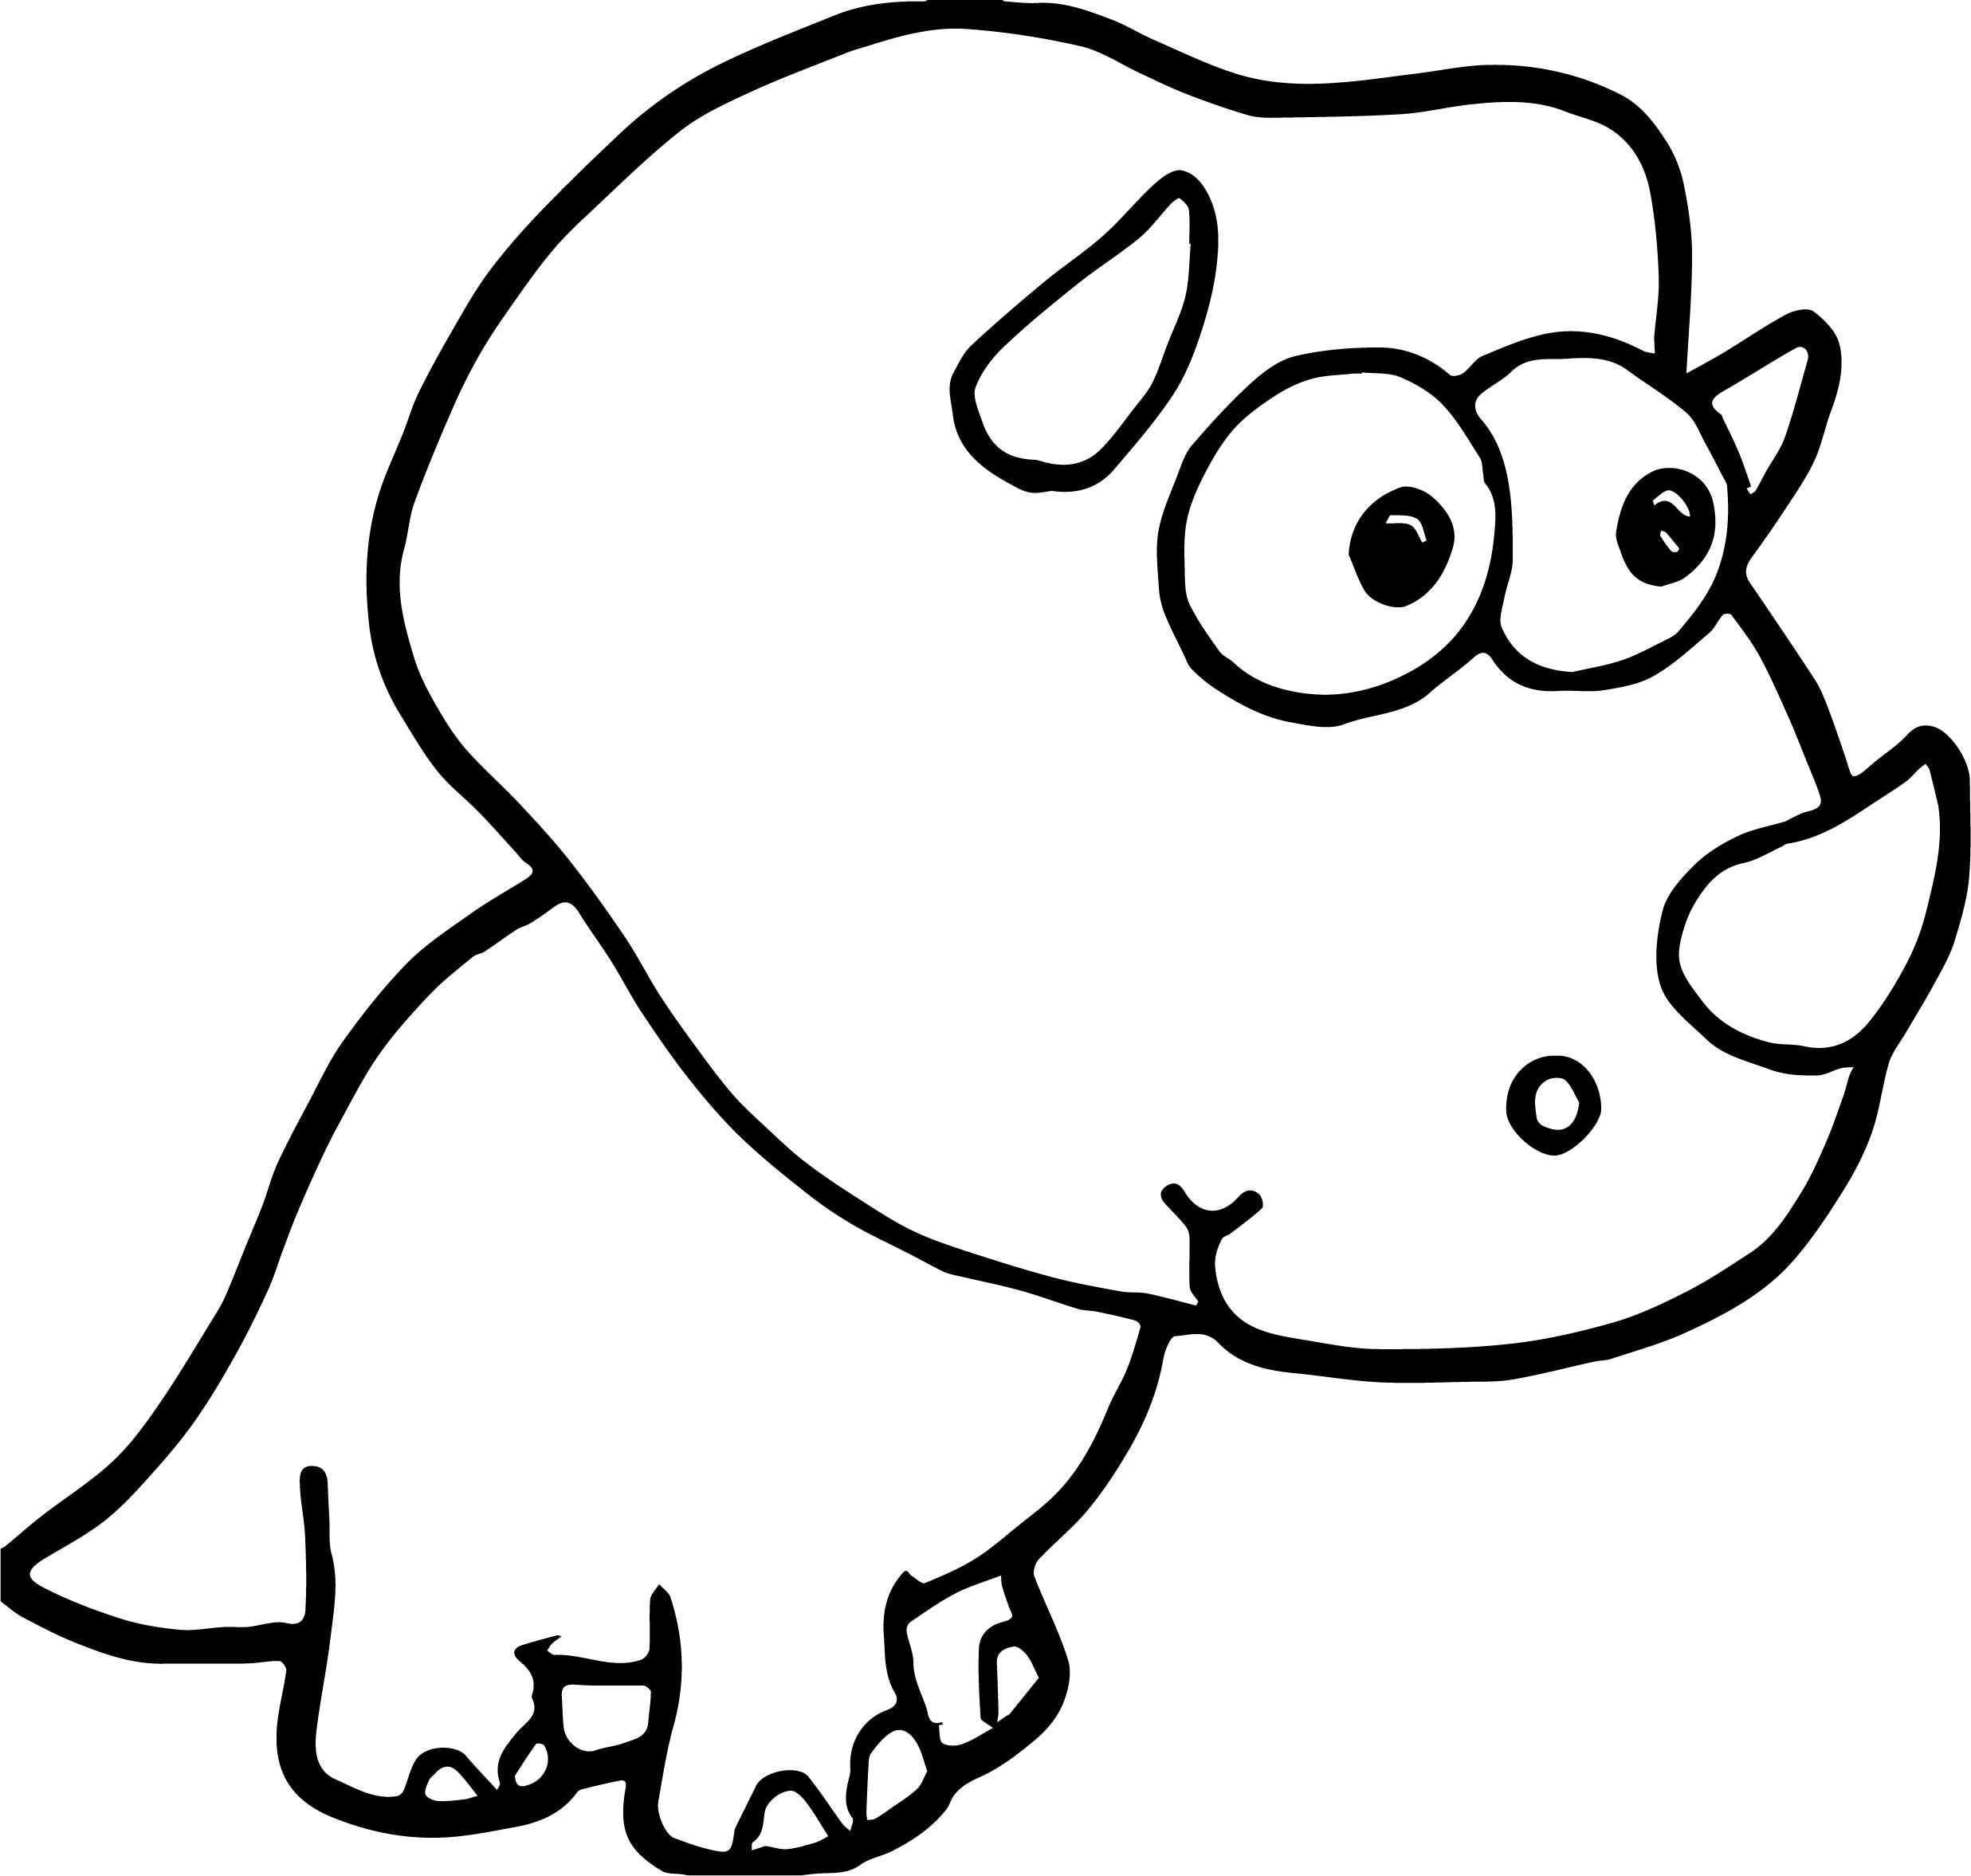 baby dinosaur coloring pages baby dinosaur coloring pages for kids dinosaurs pictures baby dinosaur pages coloring